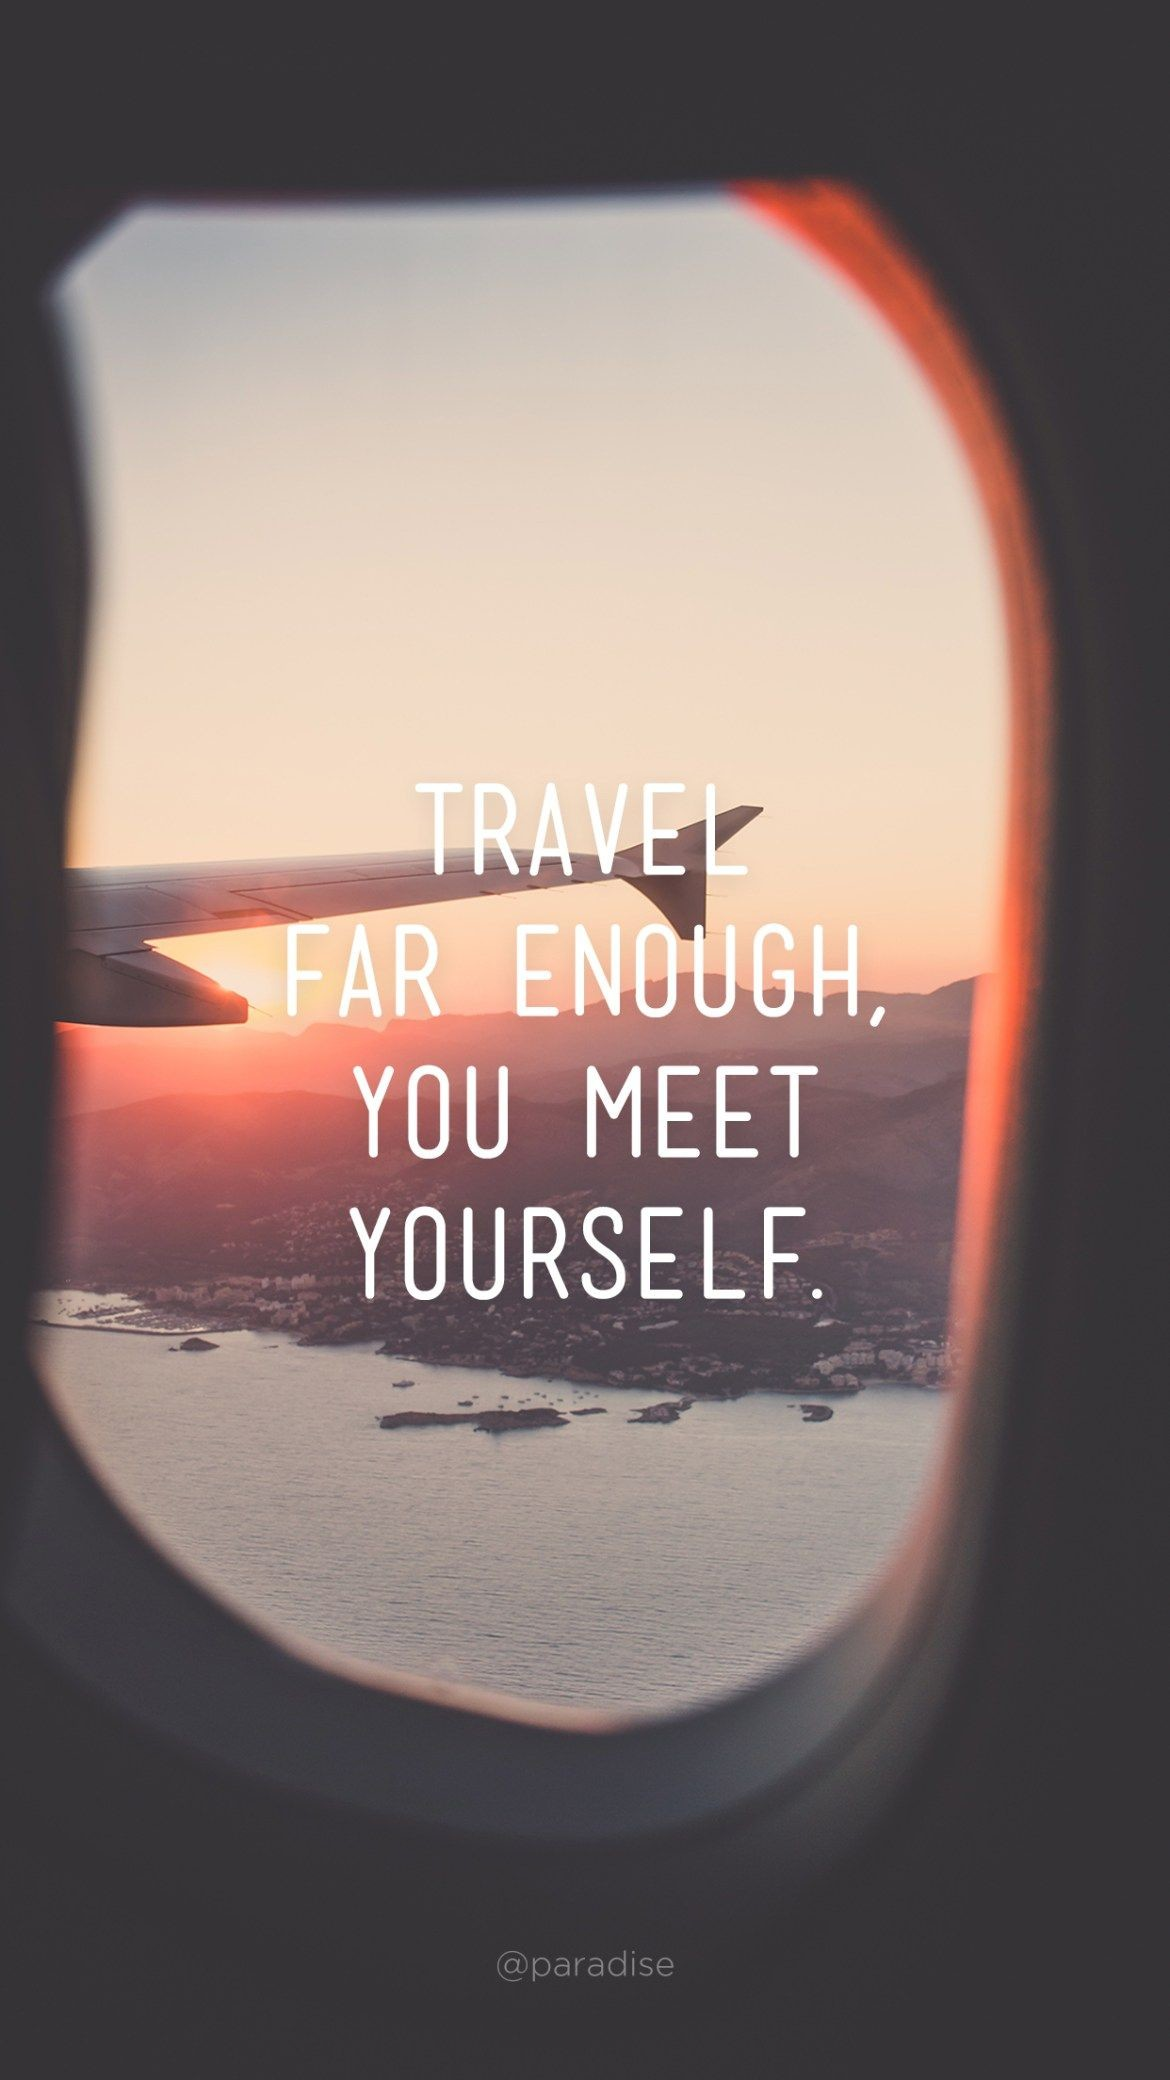 Res: 1170x2080, 15 Beautiful iPhone Wallpapers with Travel Quotes | Via Paradise